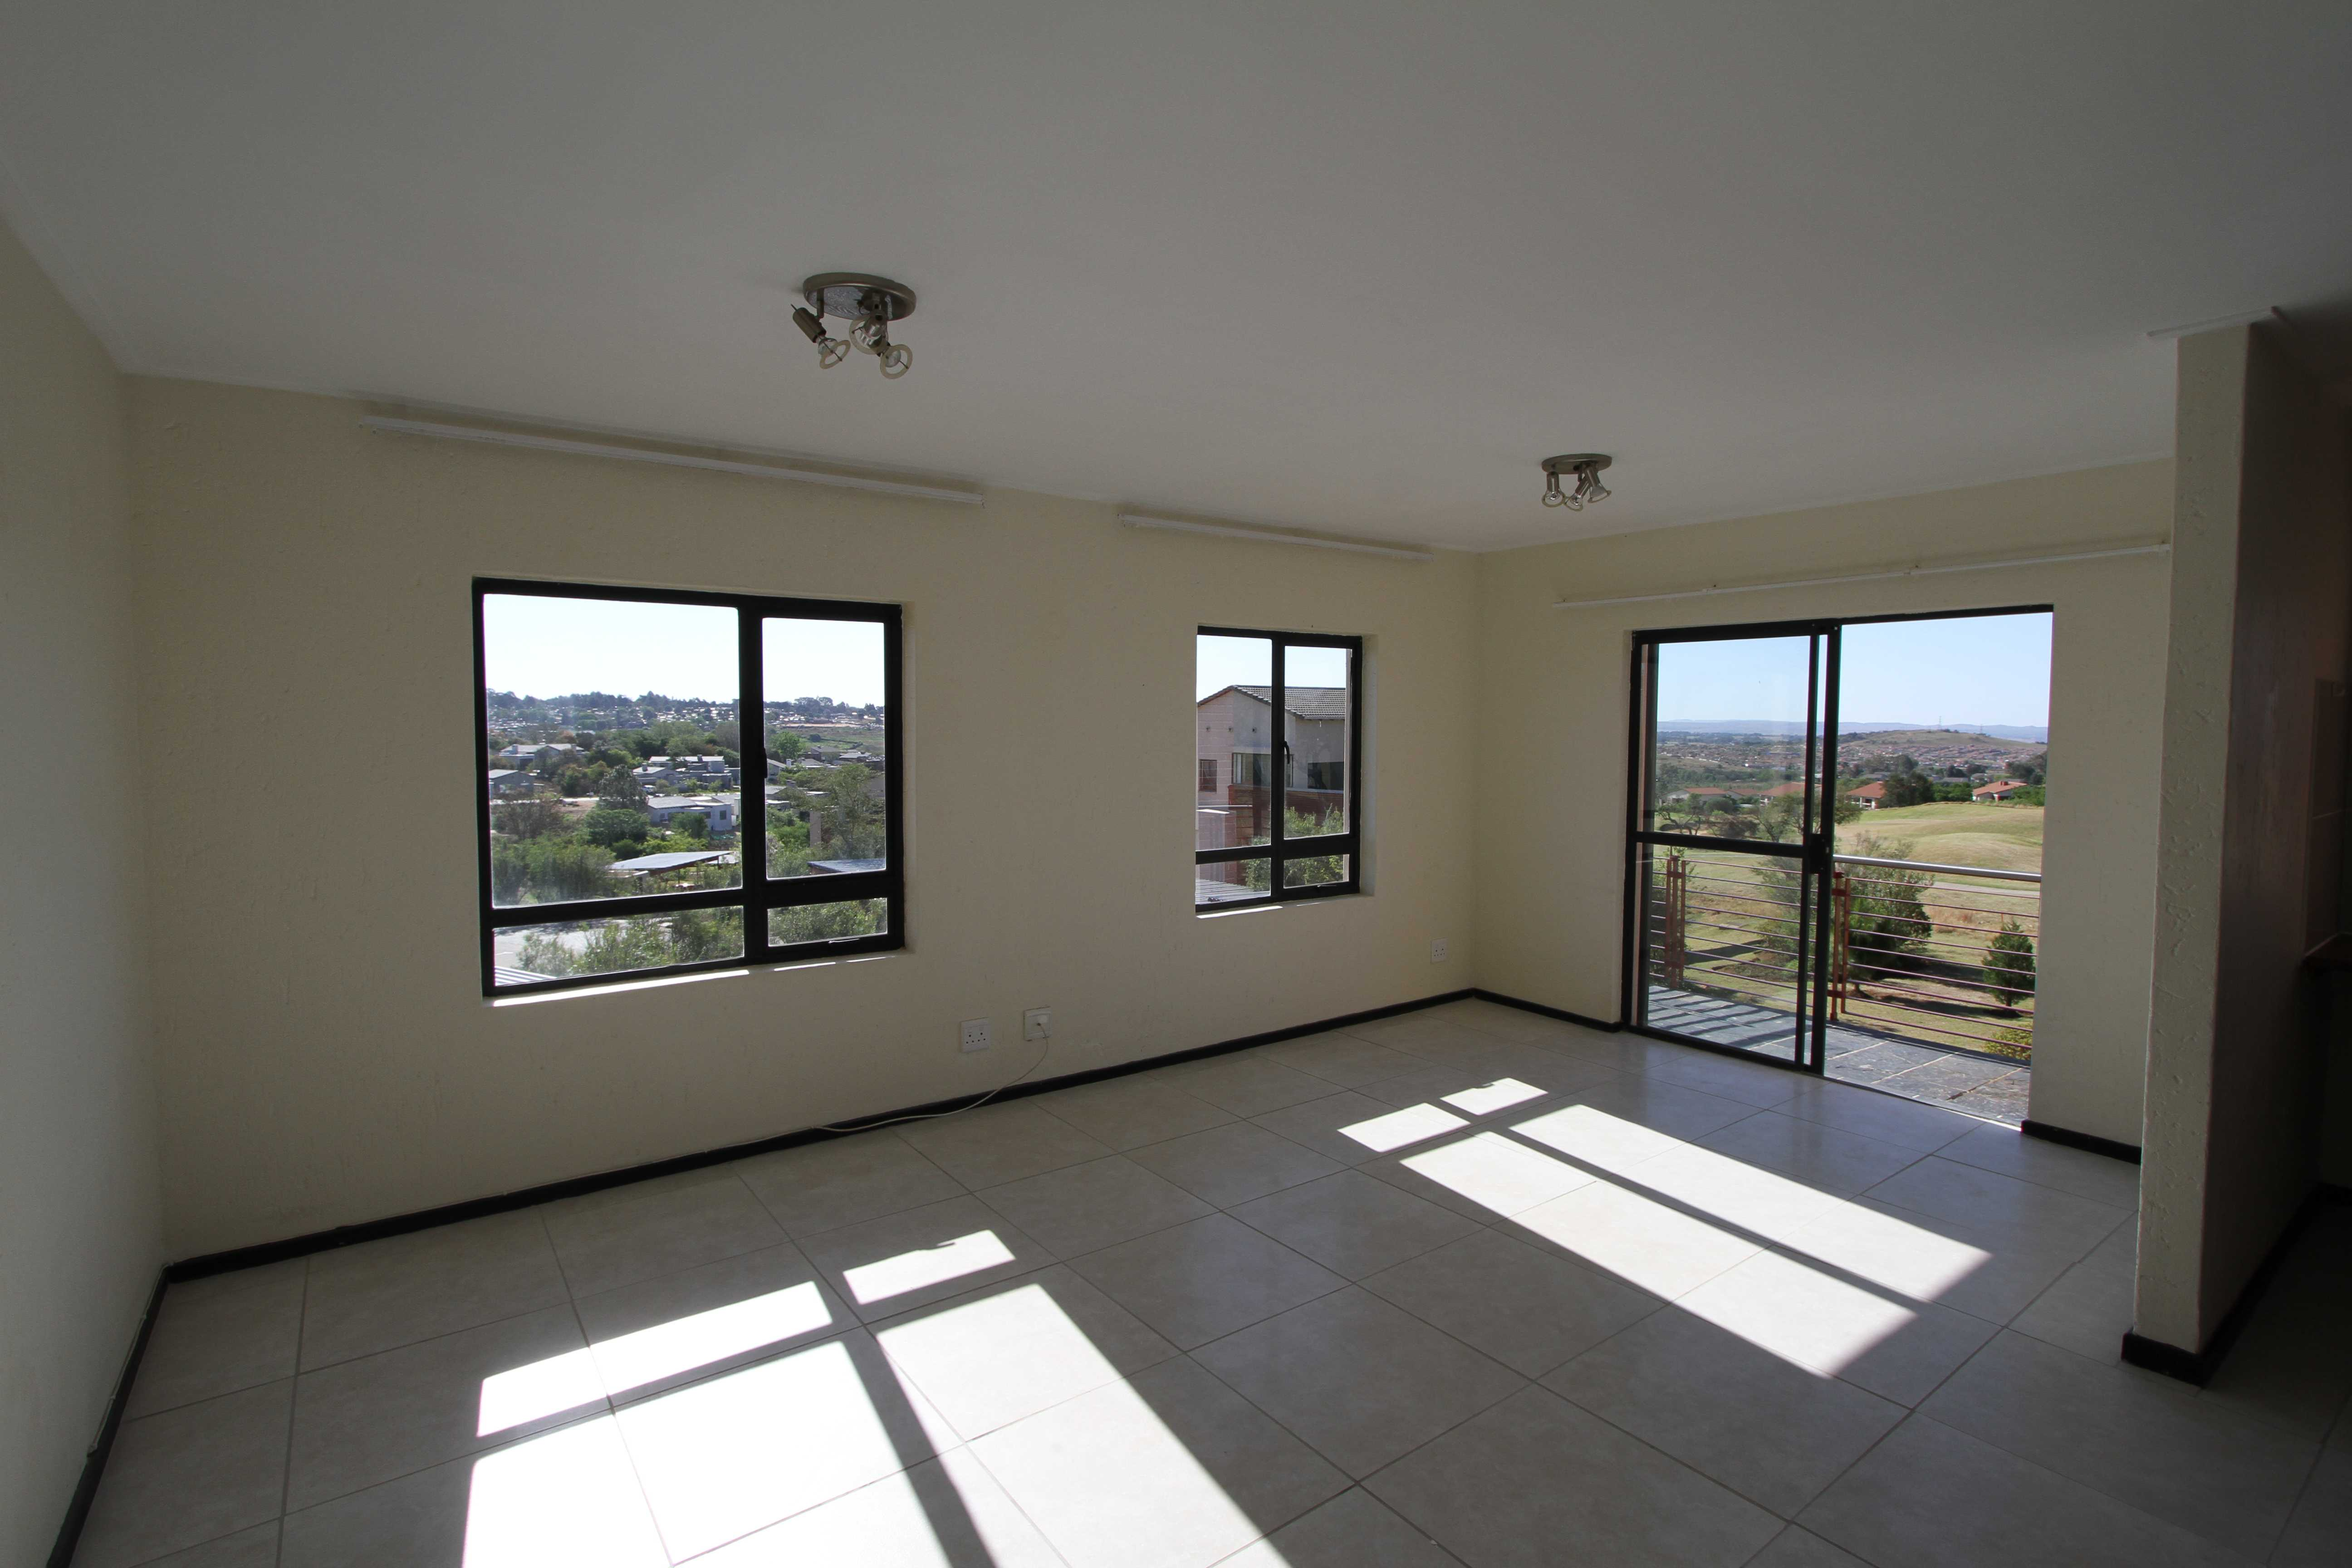 2 Bedroom Apartment with views of the golf course